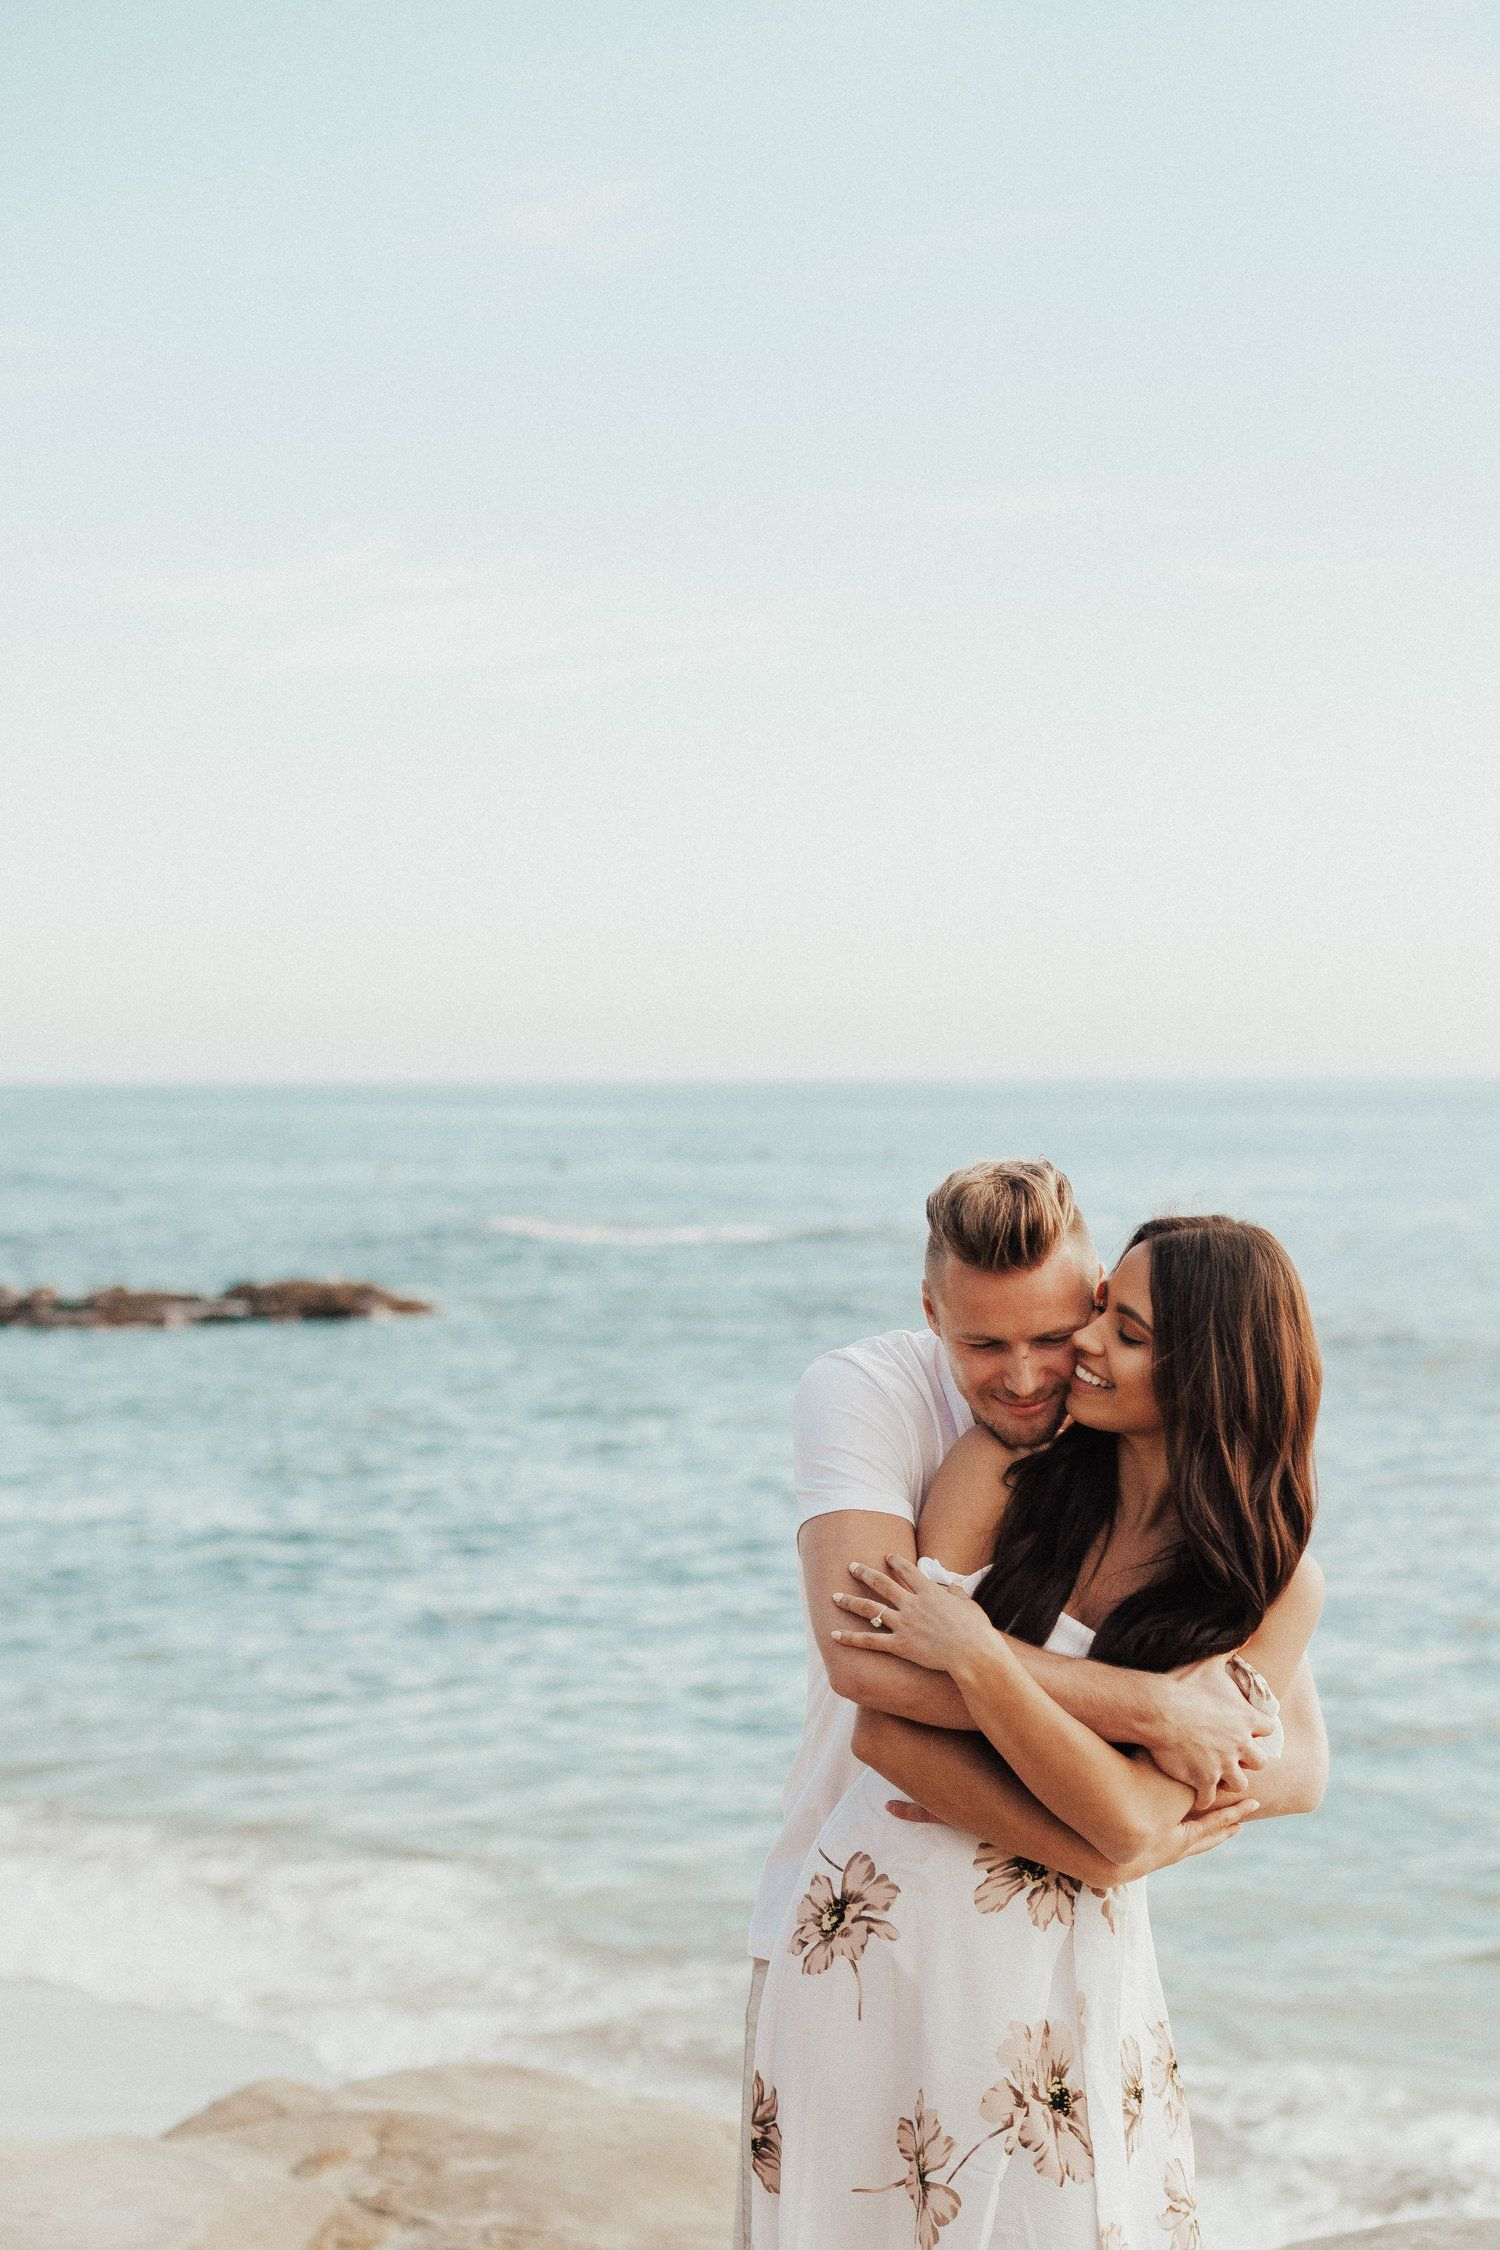 Instagram Com Charissaphoto C Charissa Cooper Photography Couples Session Photography P Beach Wedding Photography Beach Engagement Wedding Photography Poses